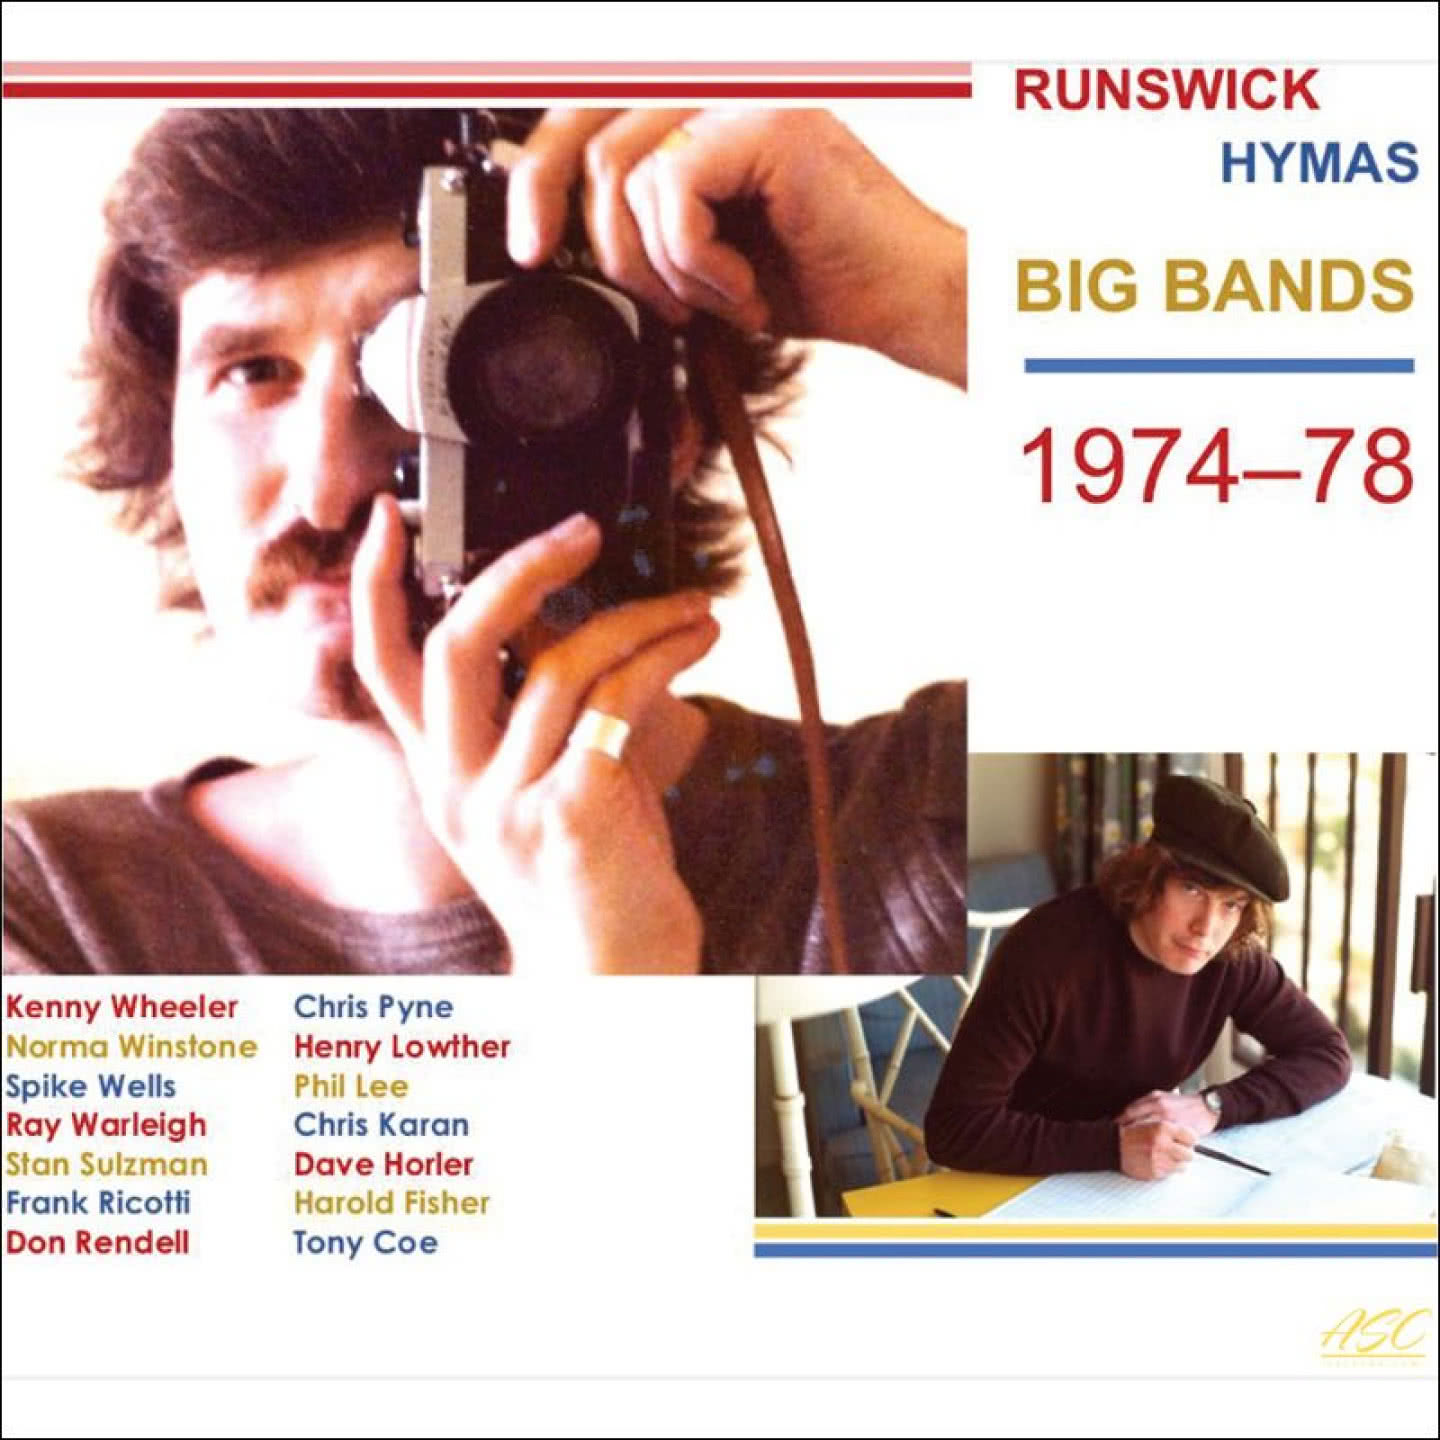 Big Bands 1974-78